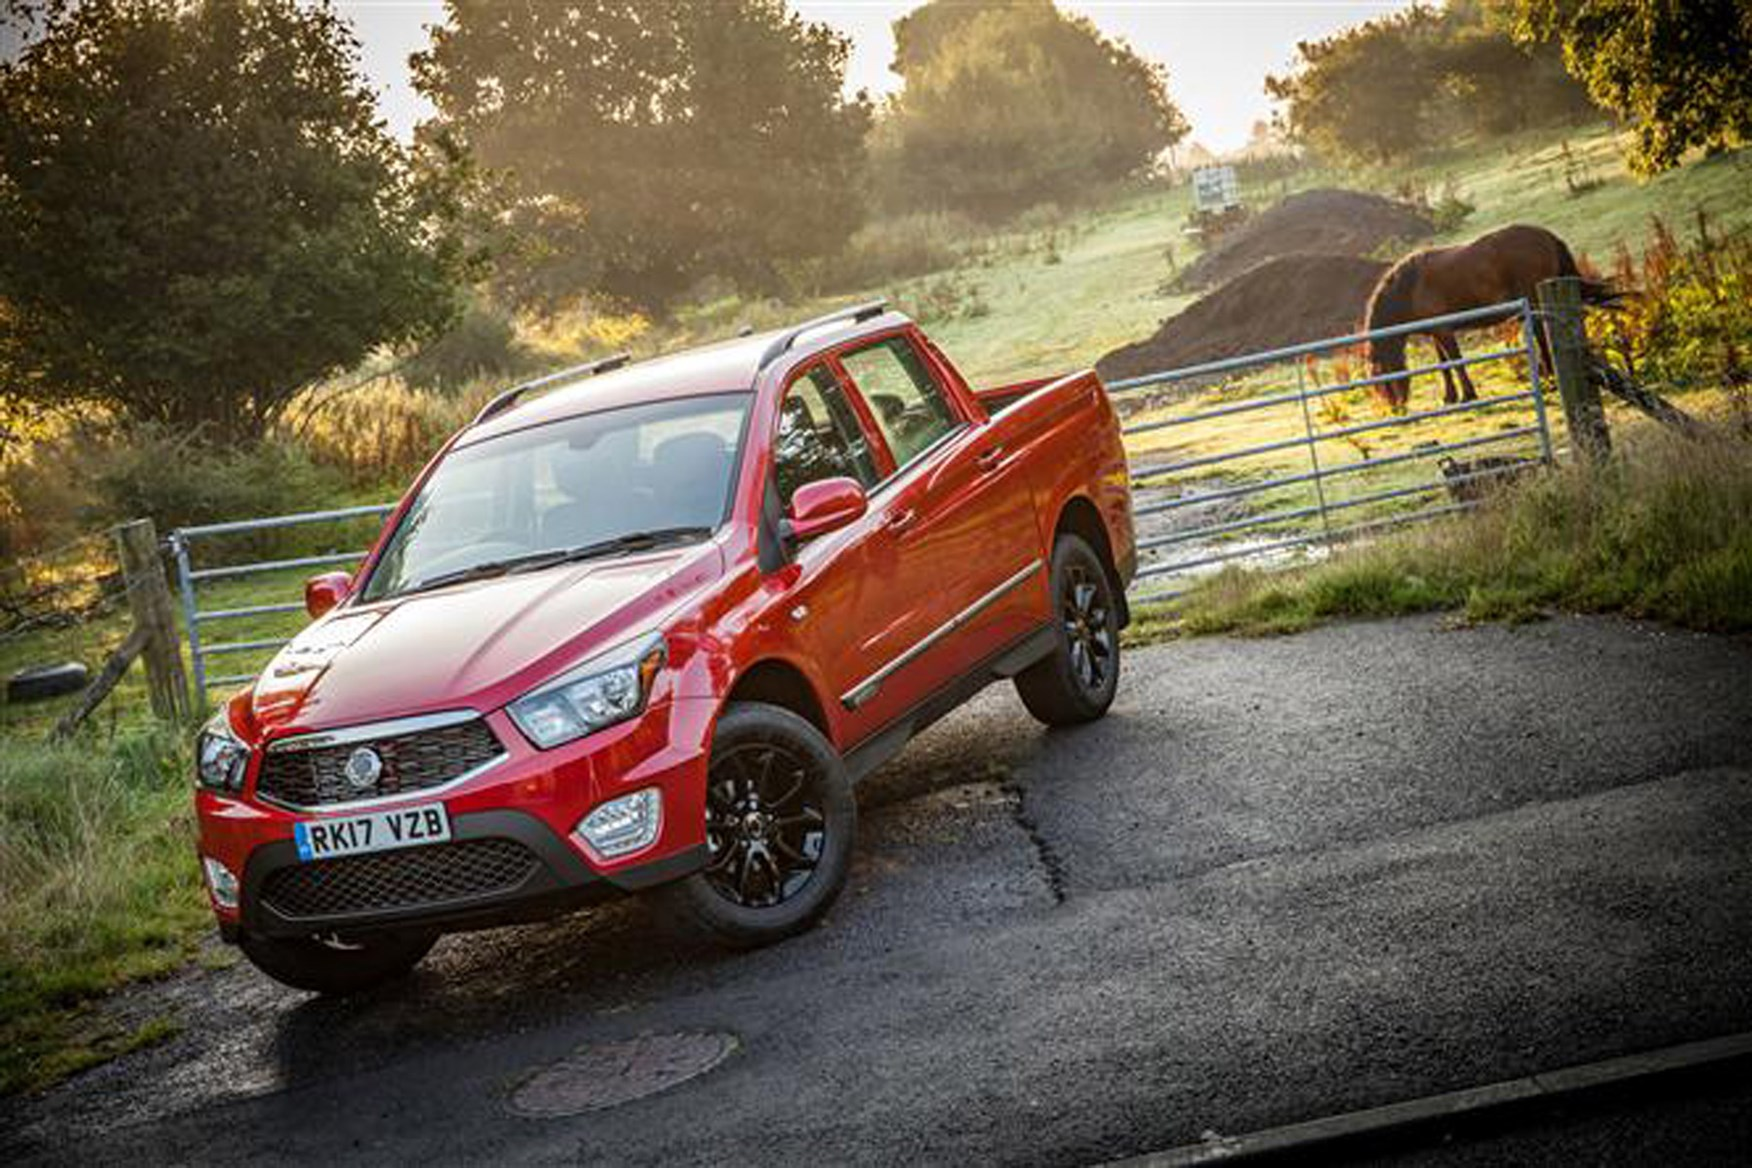 SsangYong Musso full review on Parkers Vans - day to day use